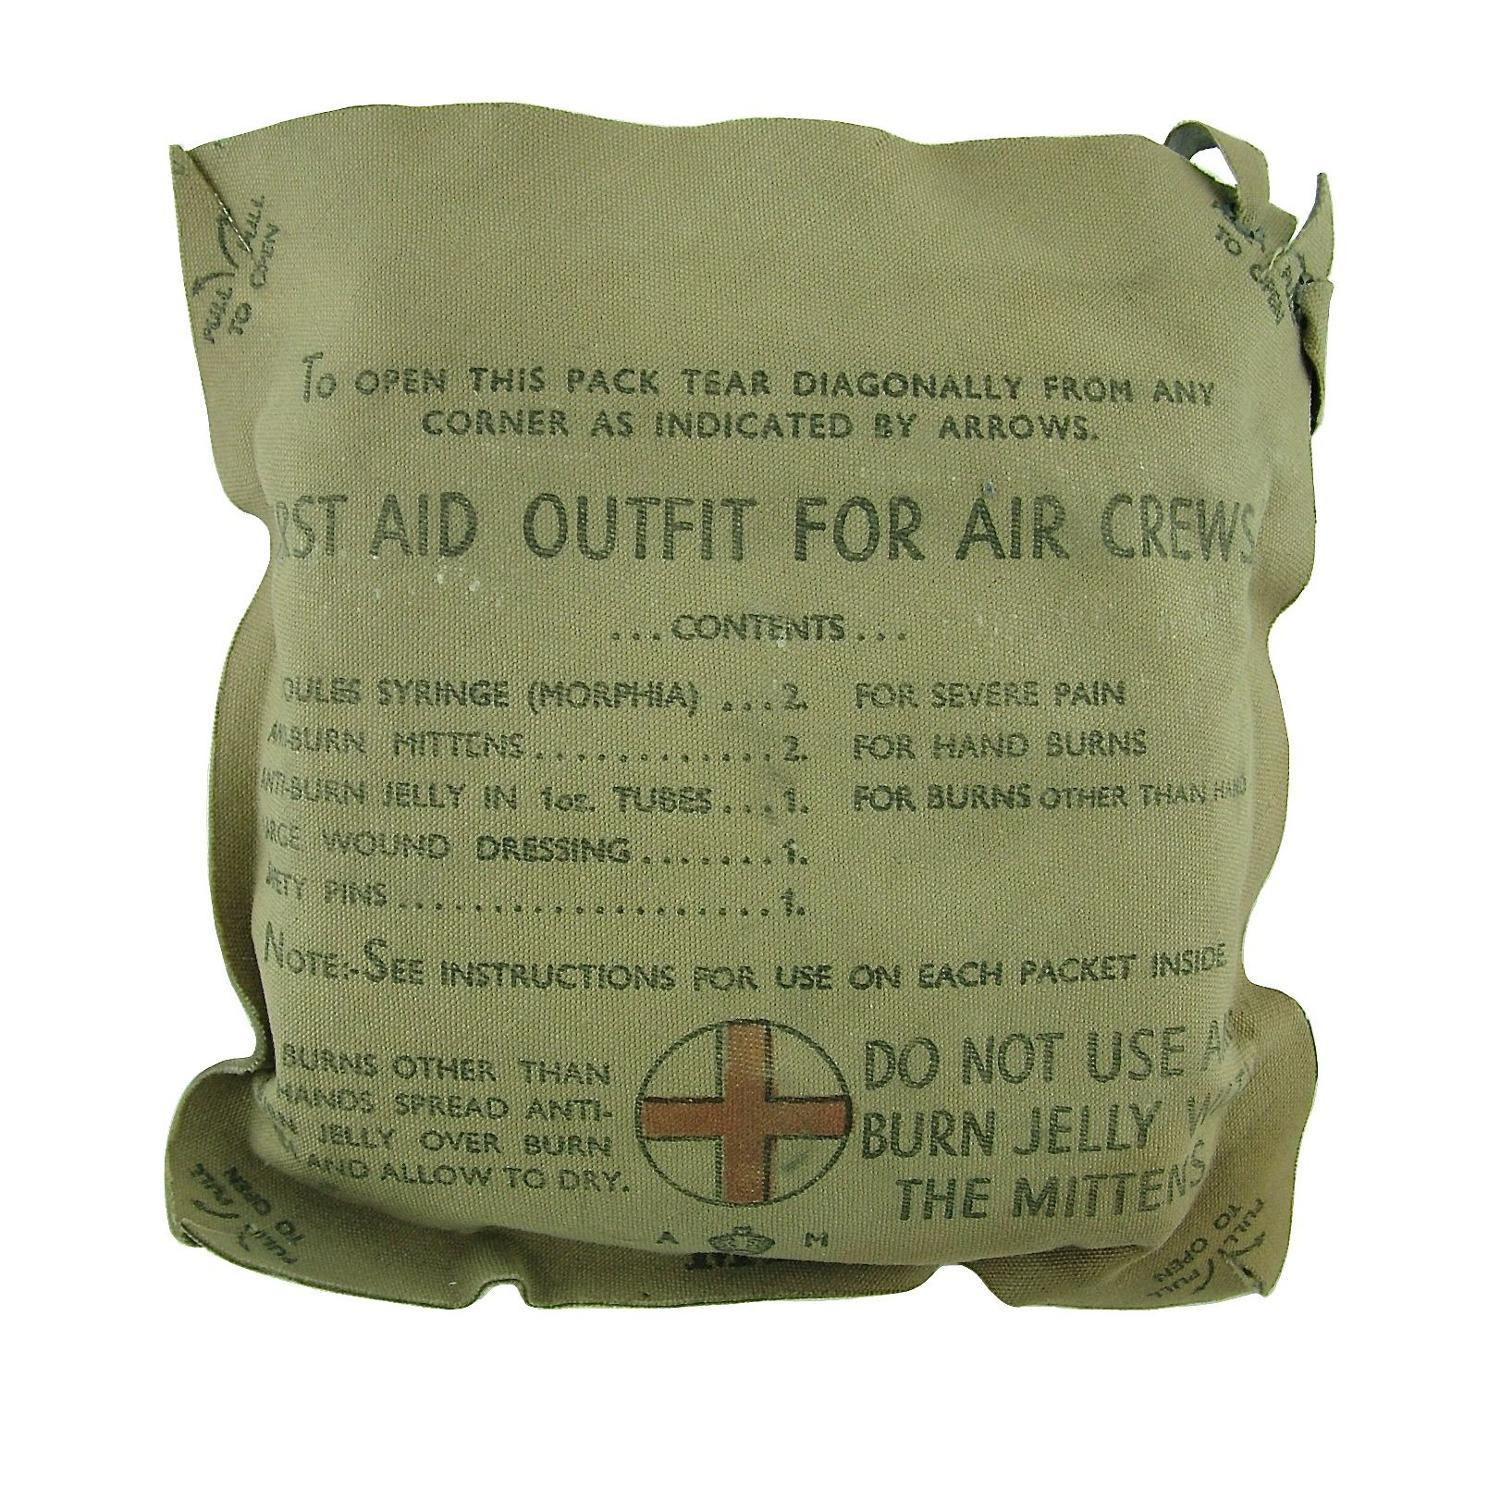 RAF First Aid Outfit For Air Crews